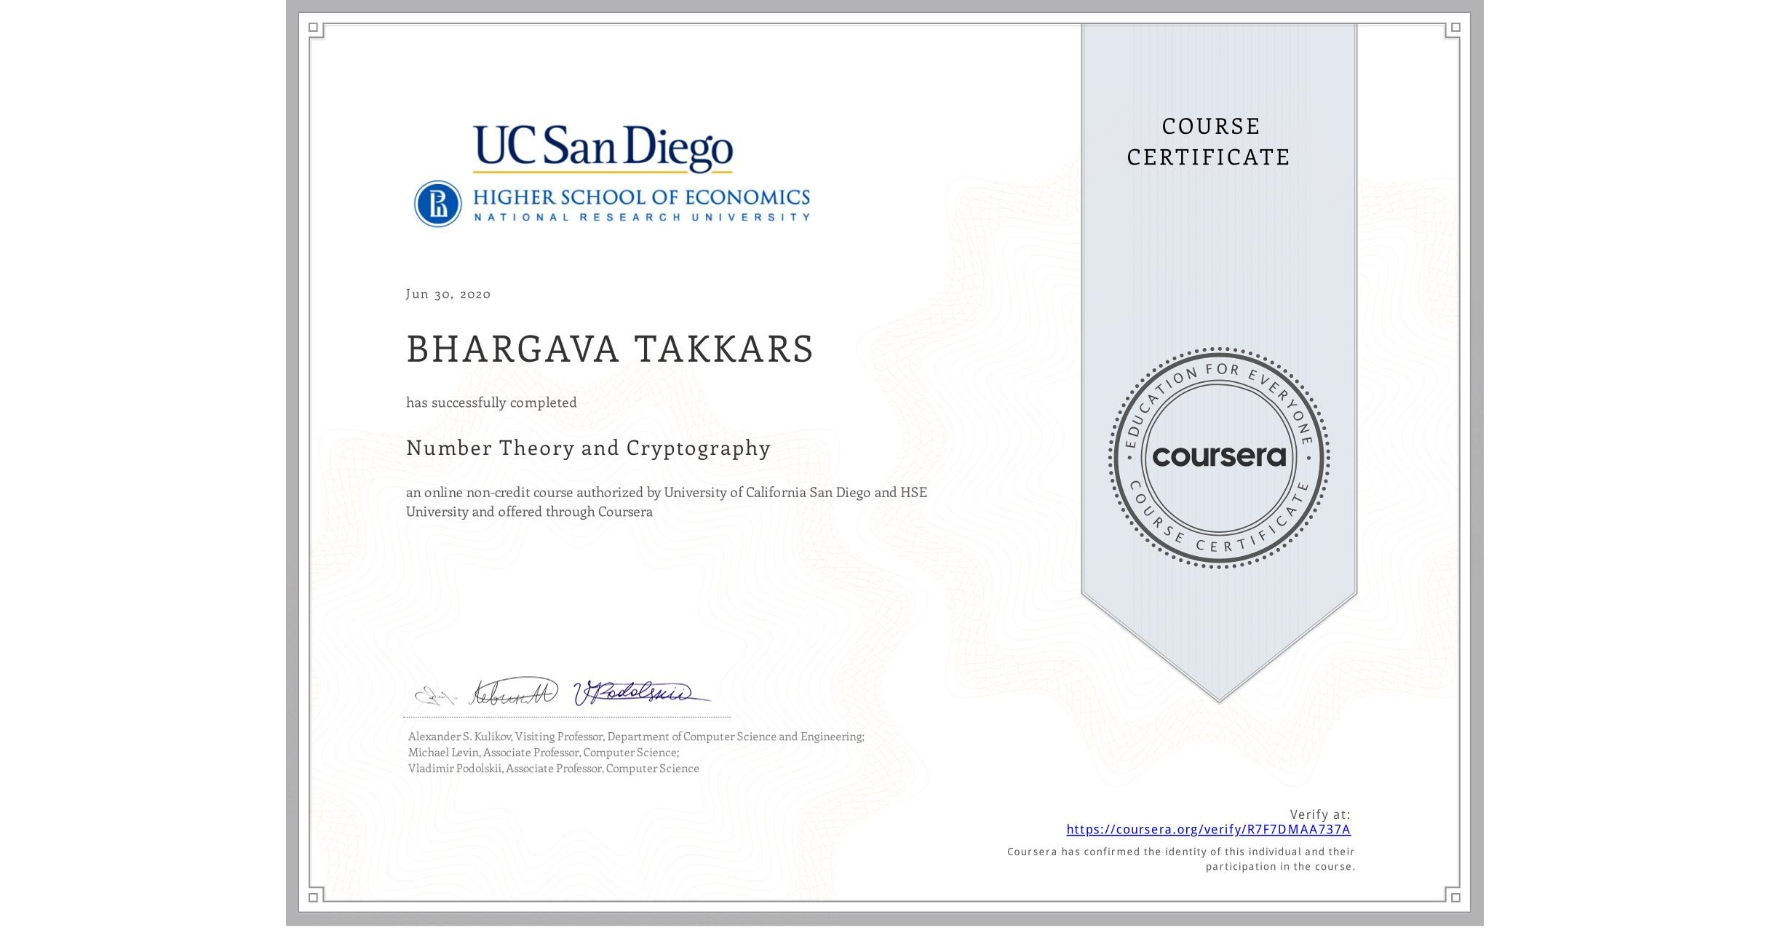 View certificate for BHARGAVA TAKKARS, Number Theory and Cryptography, an online non-credit course authorized by University of California San Diego & National Research University Higher School of Economics and offered through Coursera